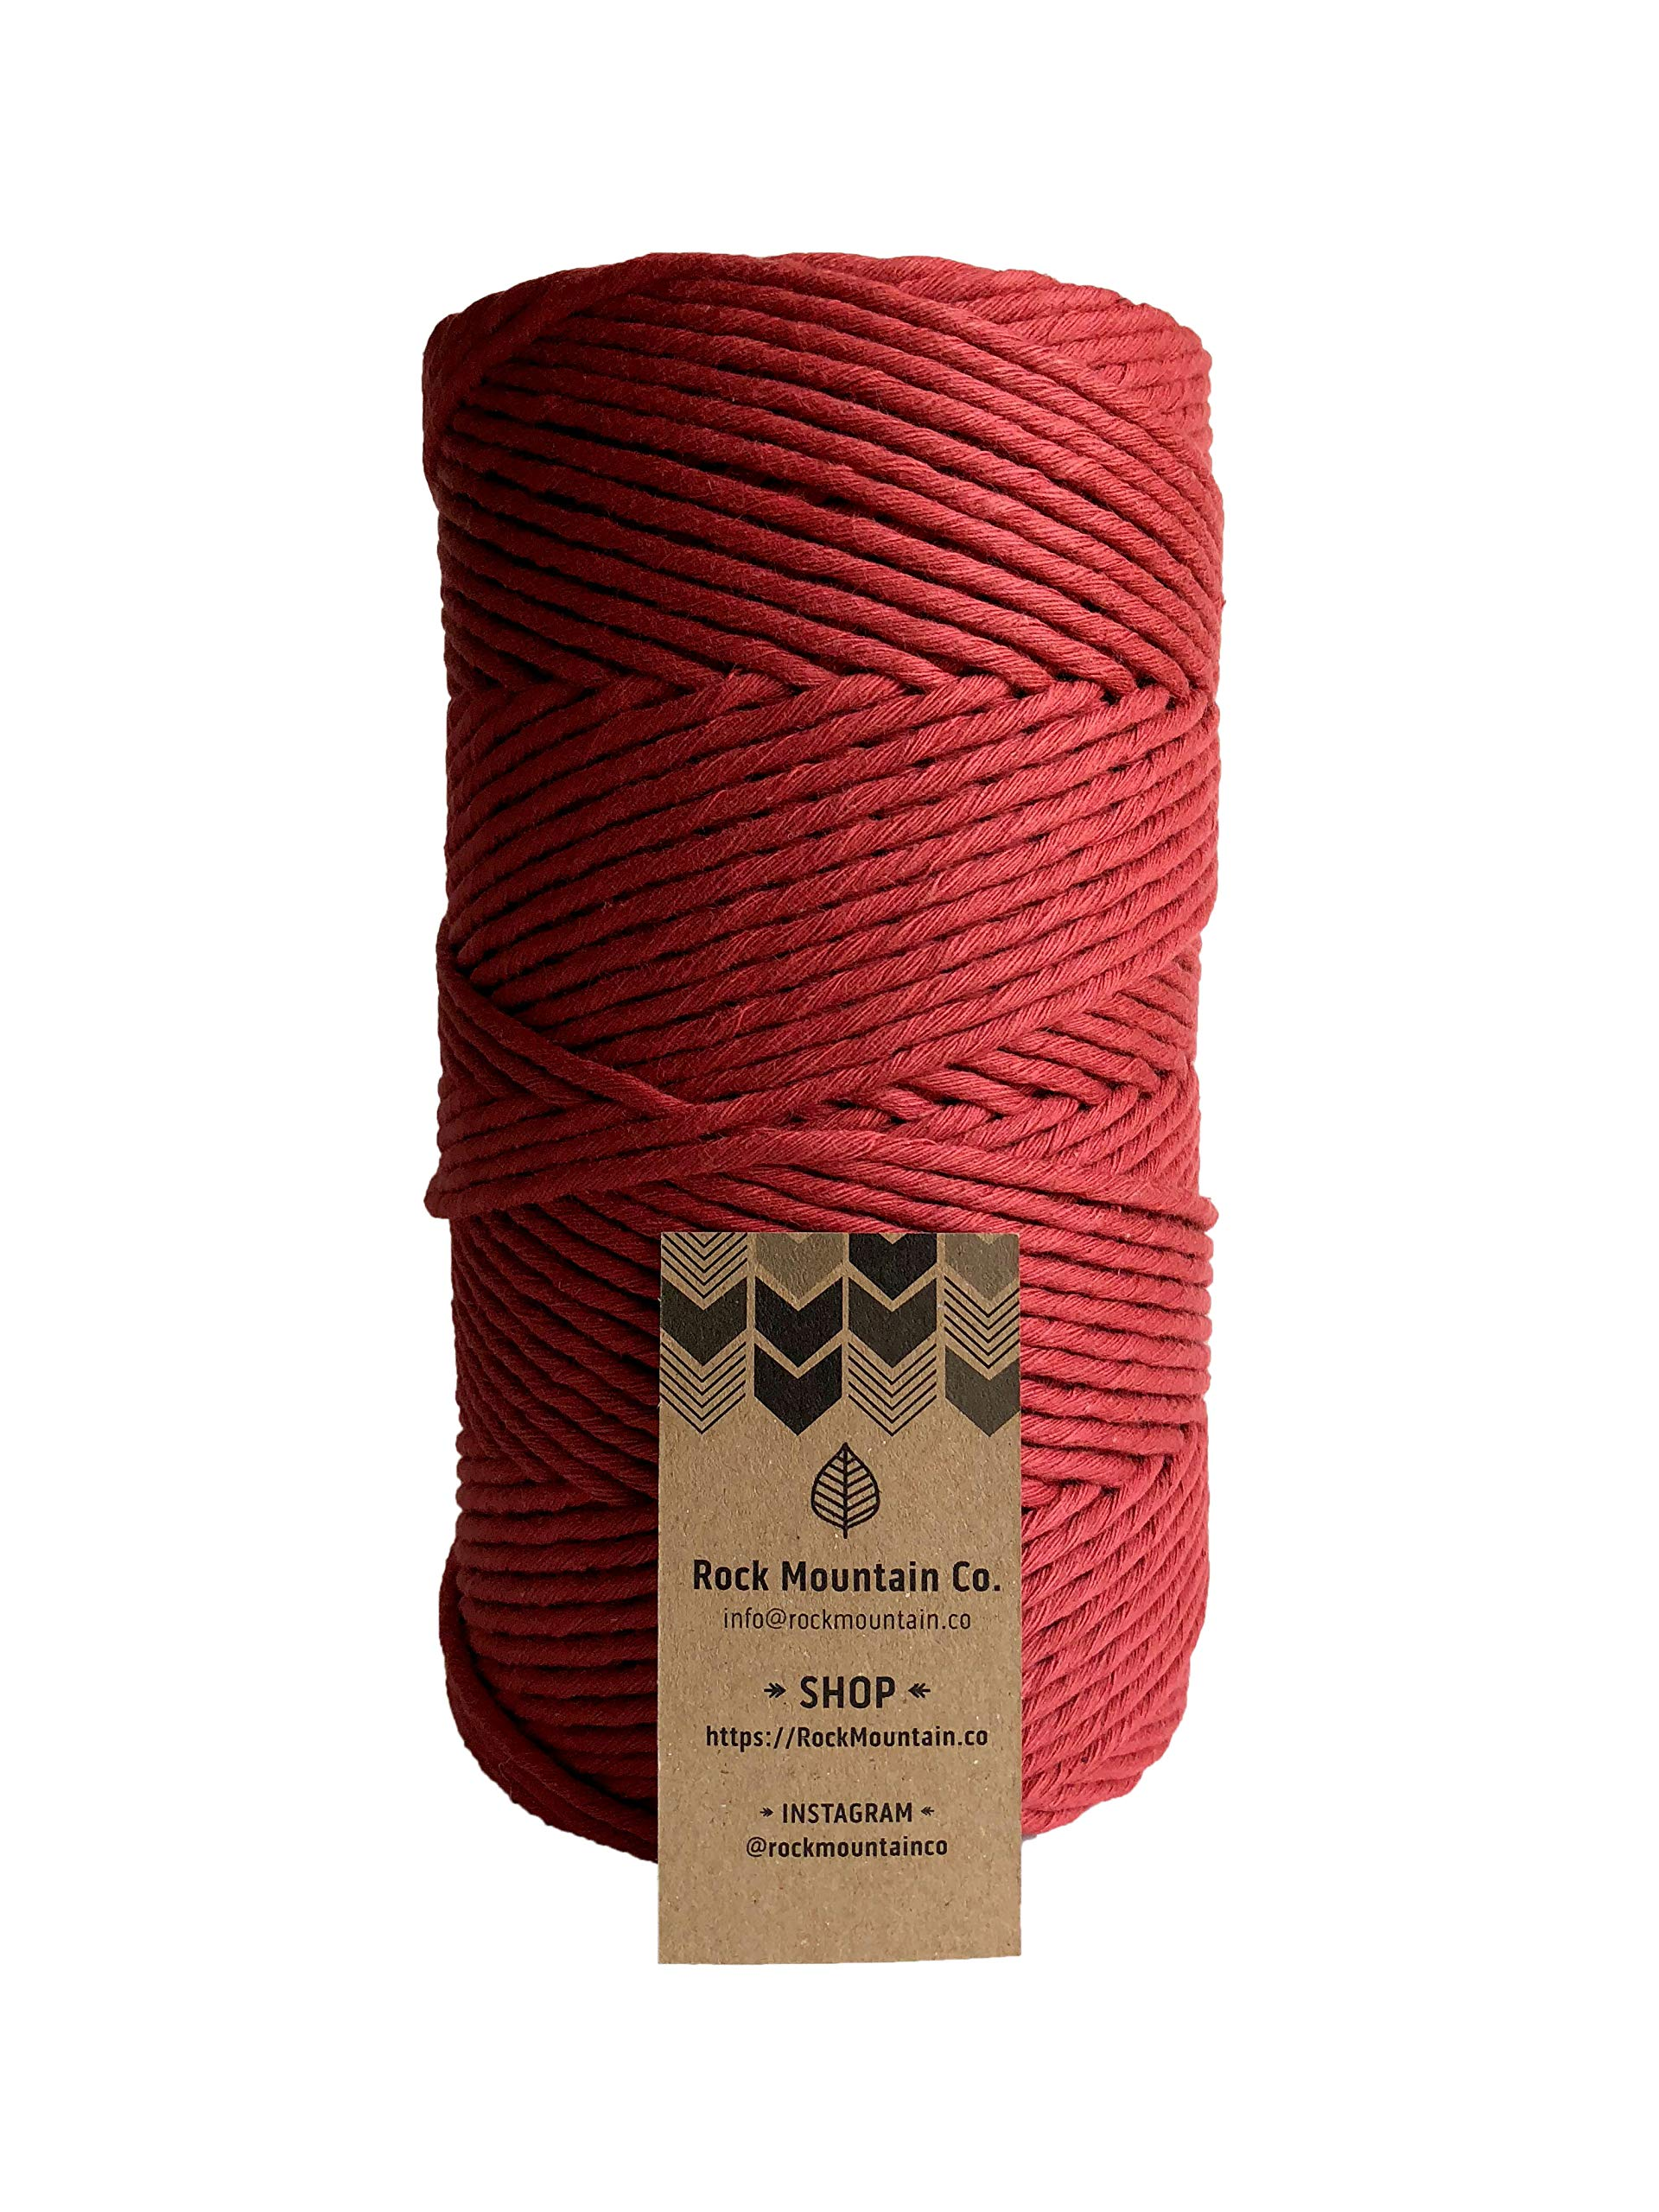 Red Macrame Cord / 4mm Single Strand Cotton Fiber Art Rope/Fruit Punch